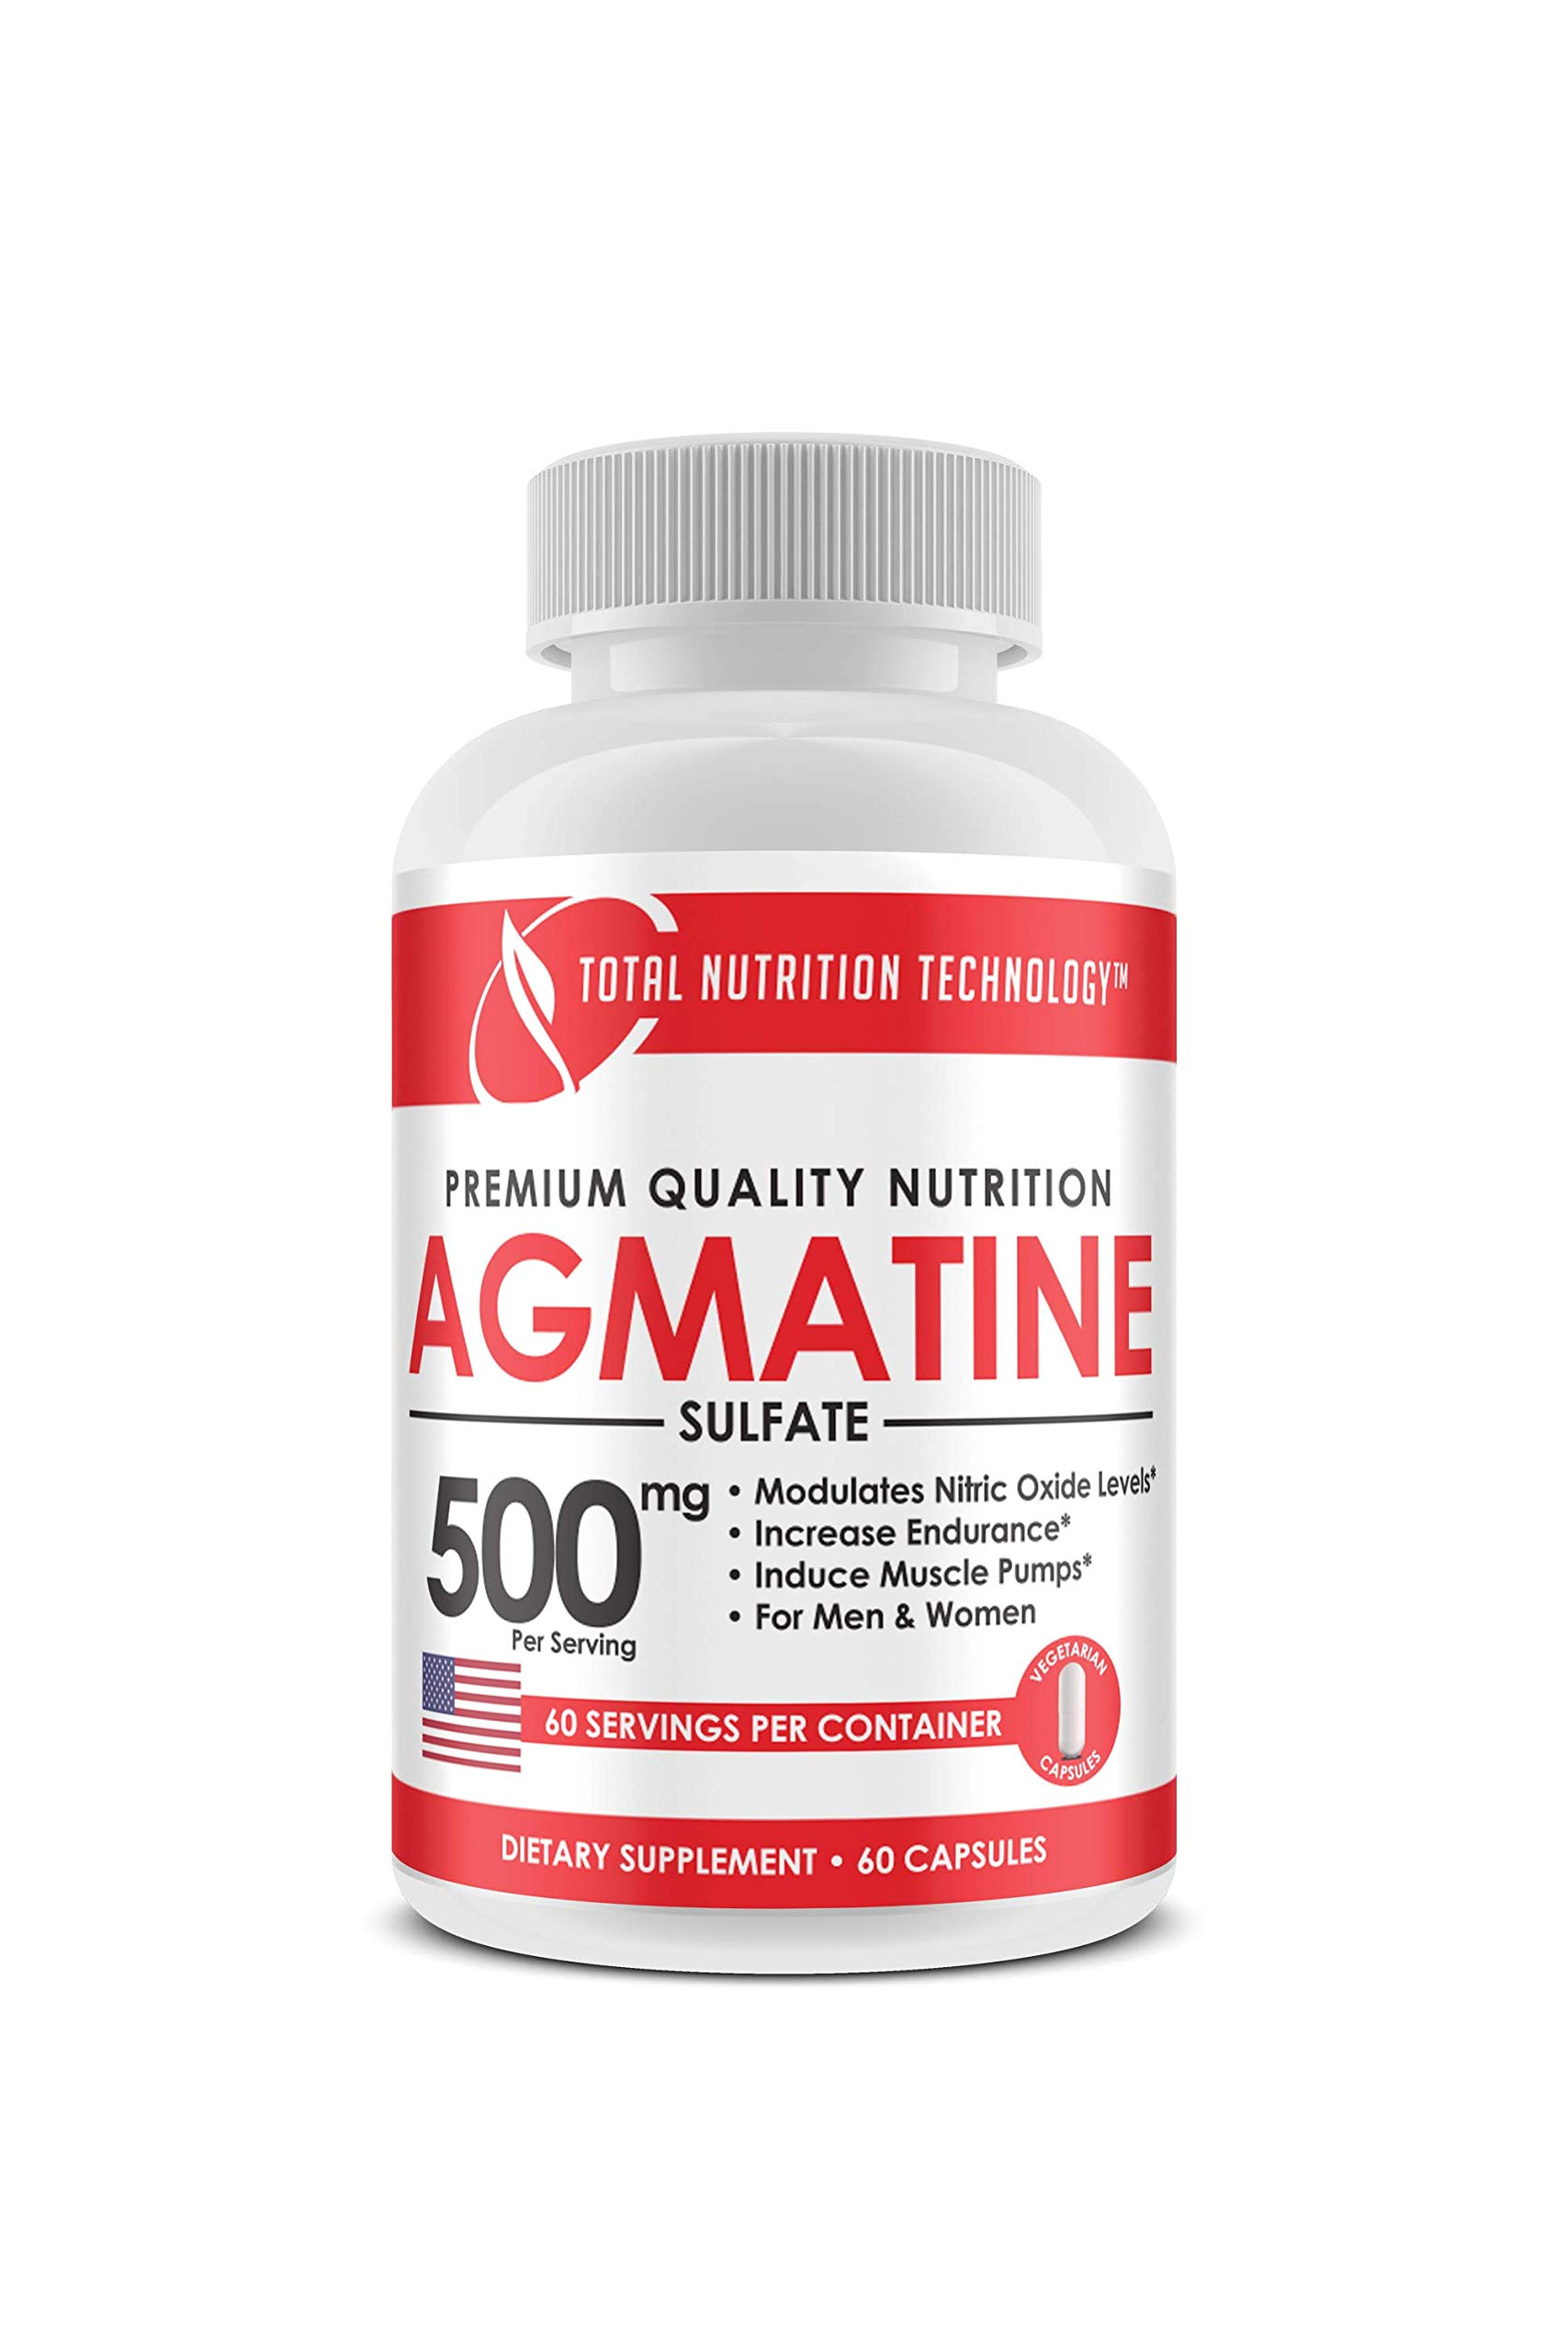 Agmatine - 60 Vegetarian Capsules - 500mg per Serving - Endurance - Muscle Pumps -Pre Workout - by Total Nutrition Technology by Total Nutrition Technology